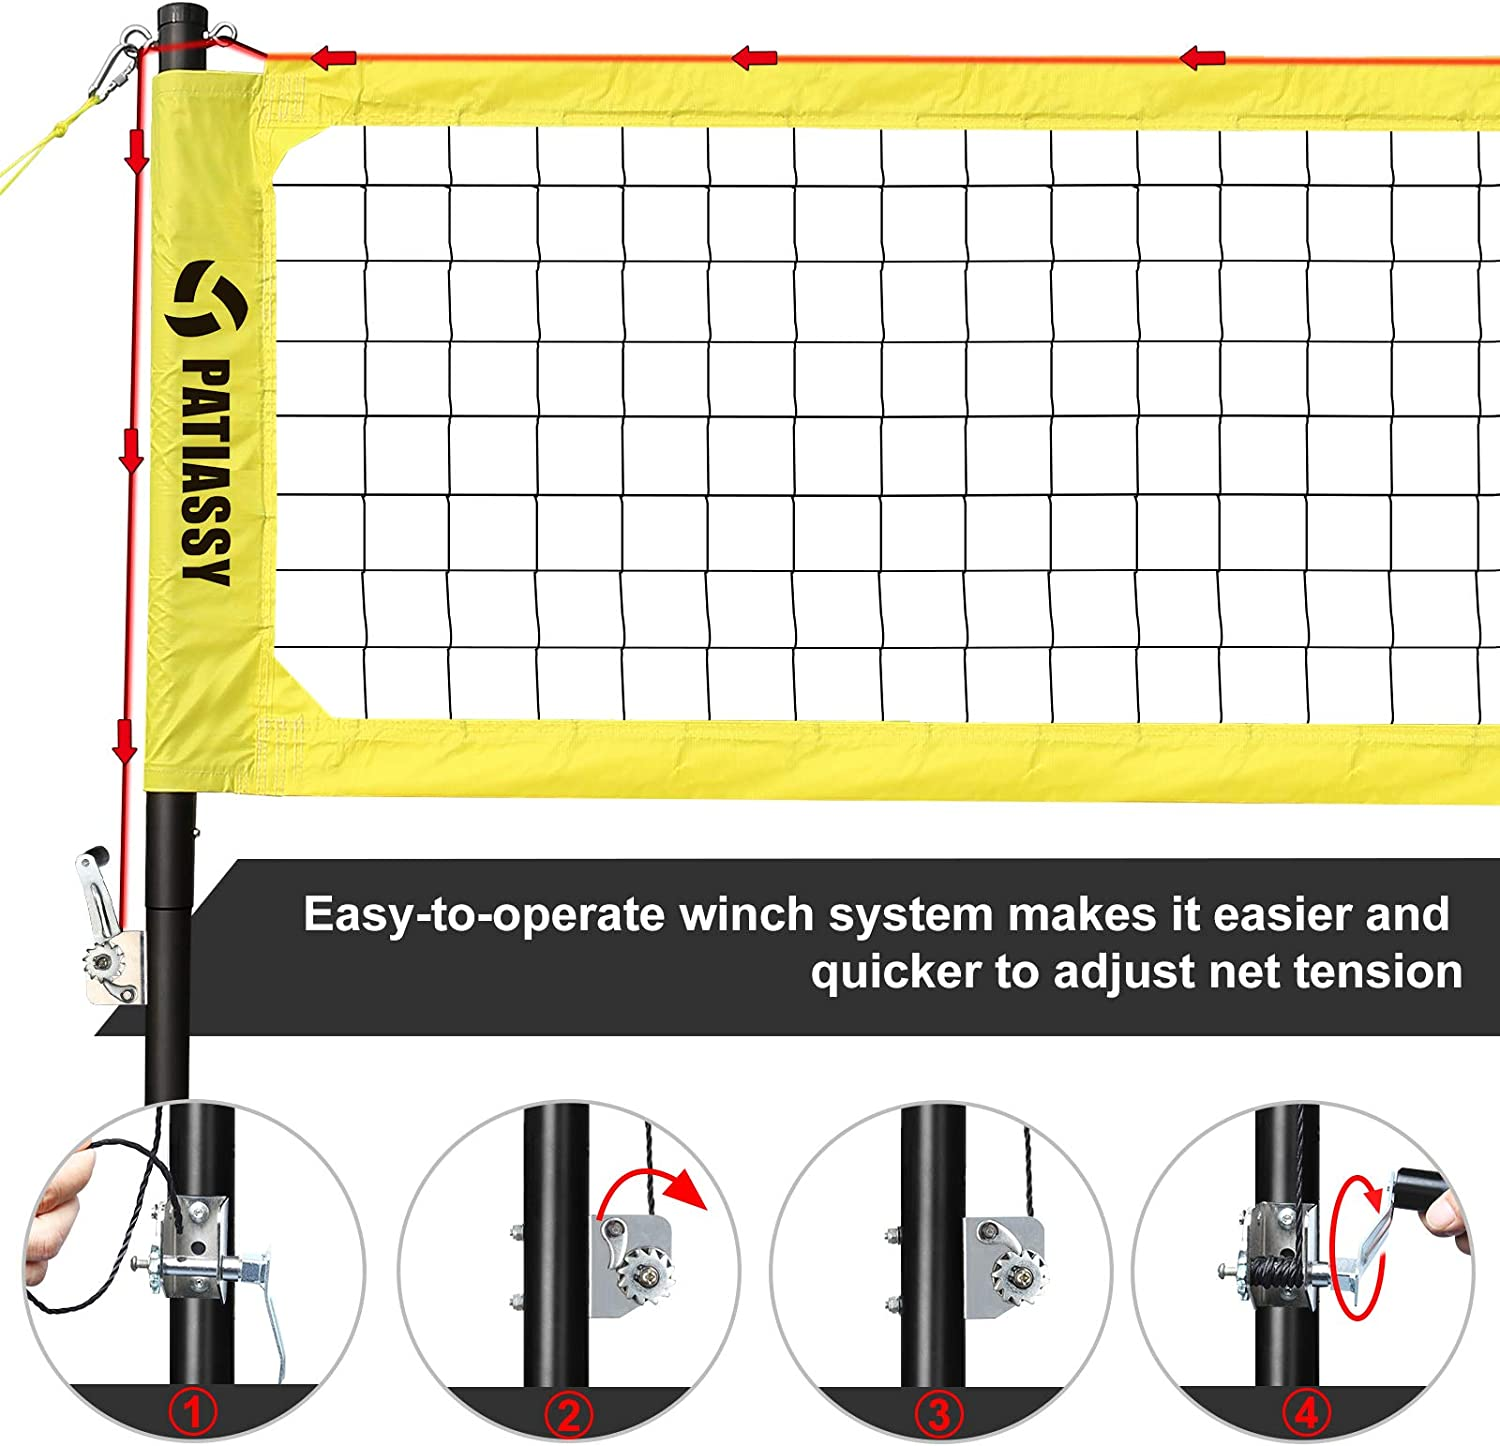 Winch System Backyard Volleyball with Pump and Carry Bag for Beach Patiassy Professional Volleyball Set Includes Portable Outdoor Volleyball Net with Adjustable Height Aluminum Poles